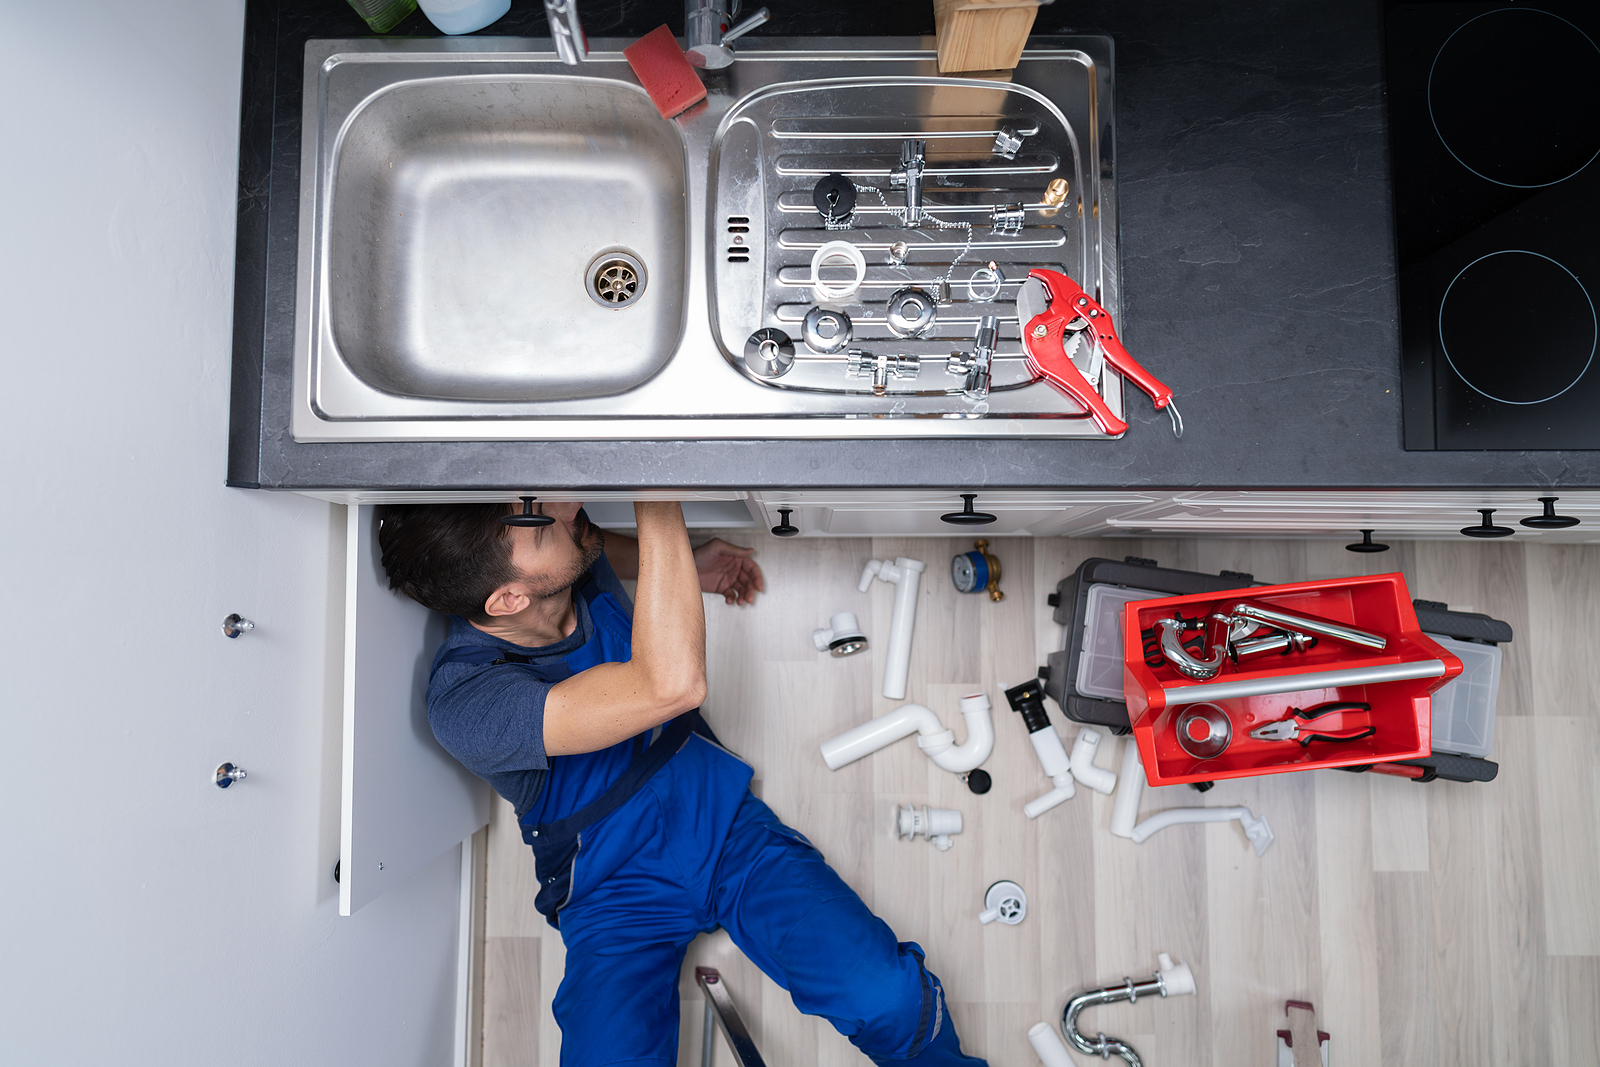 Plumber fixing a sink leakage